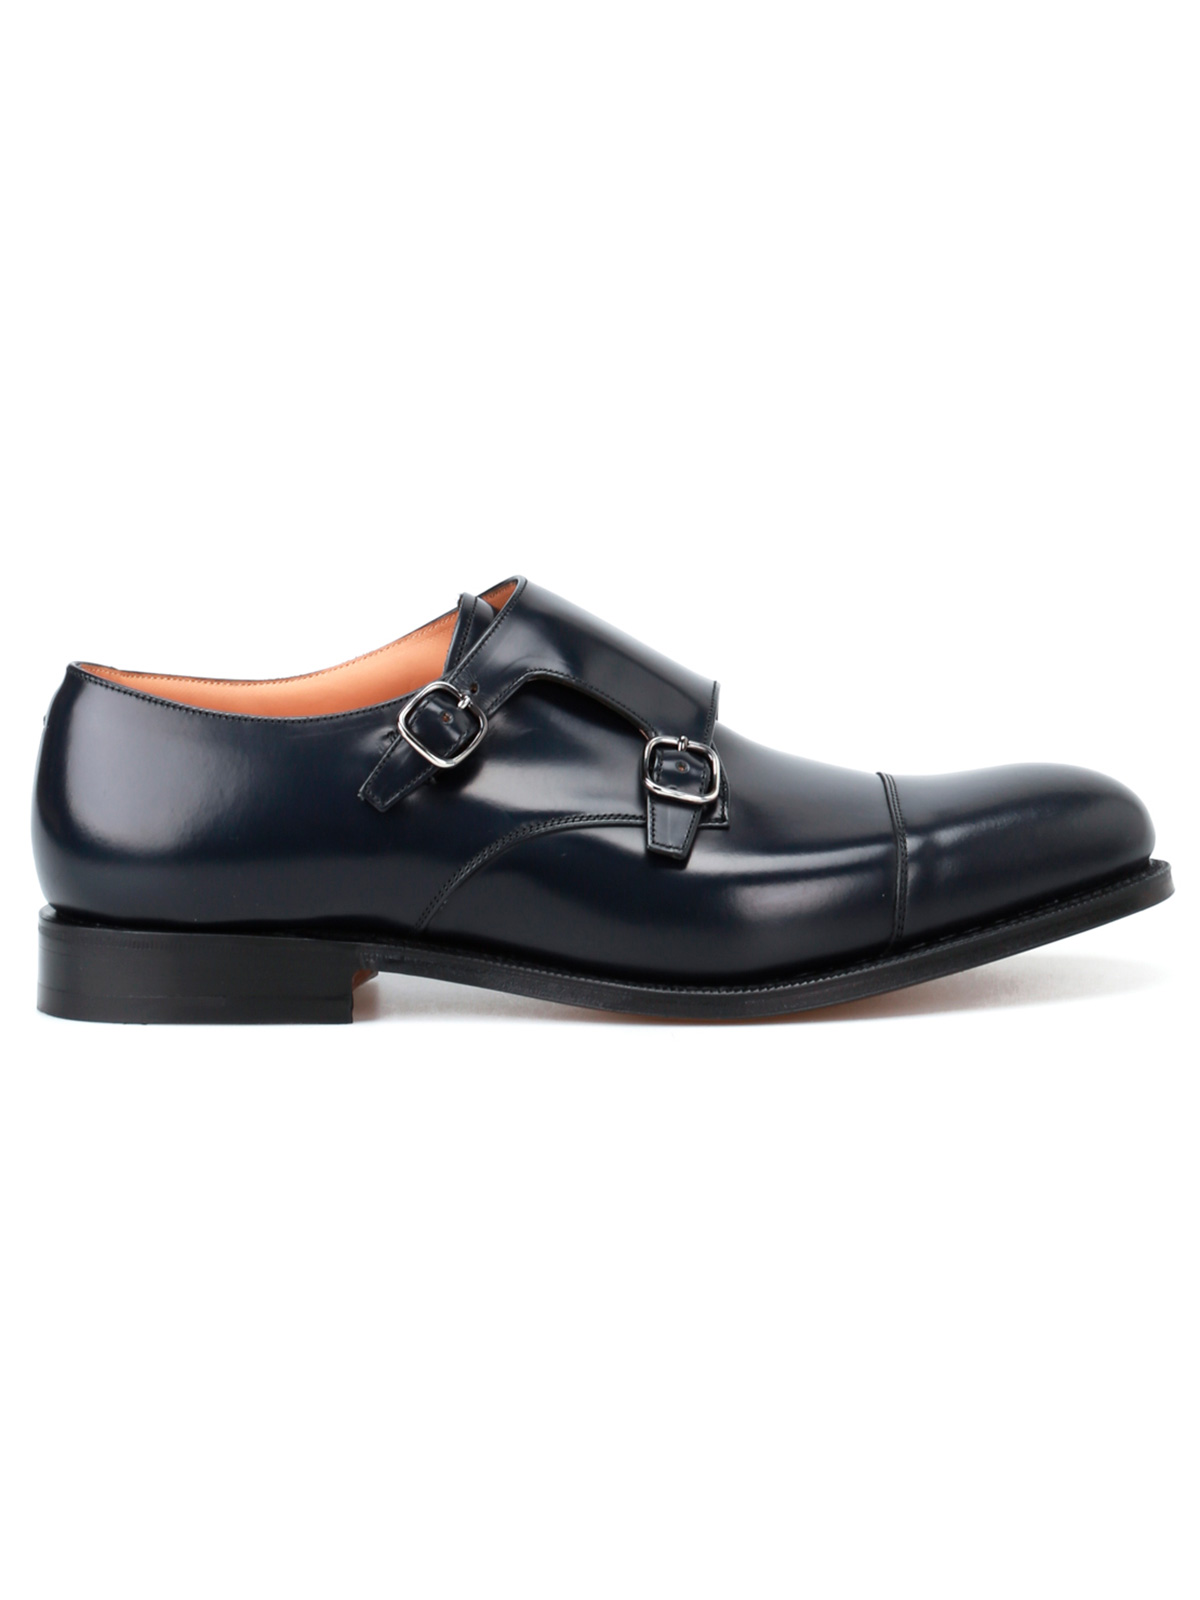 Picture of CHURCH'S | Men's Monk Strap